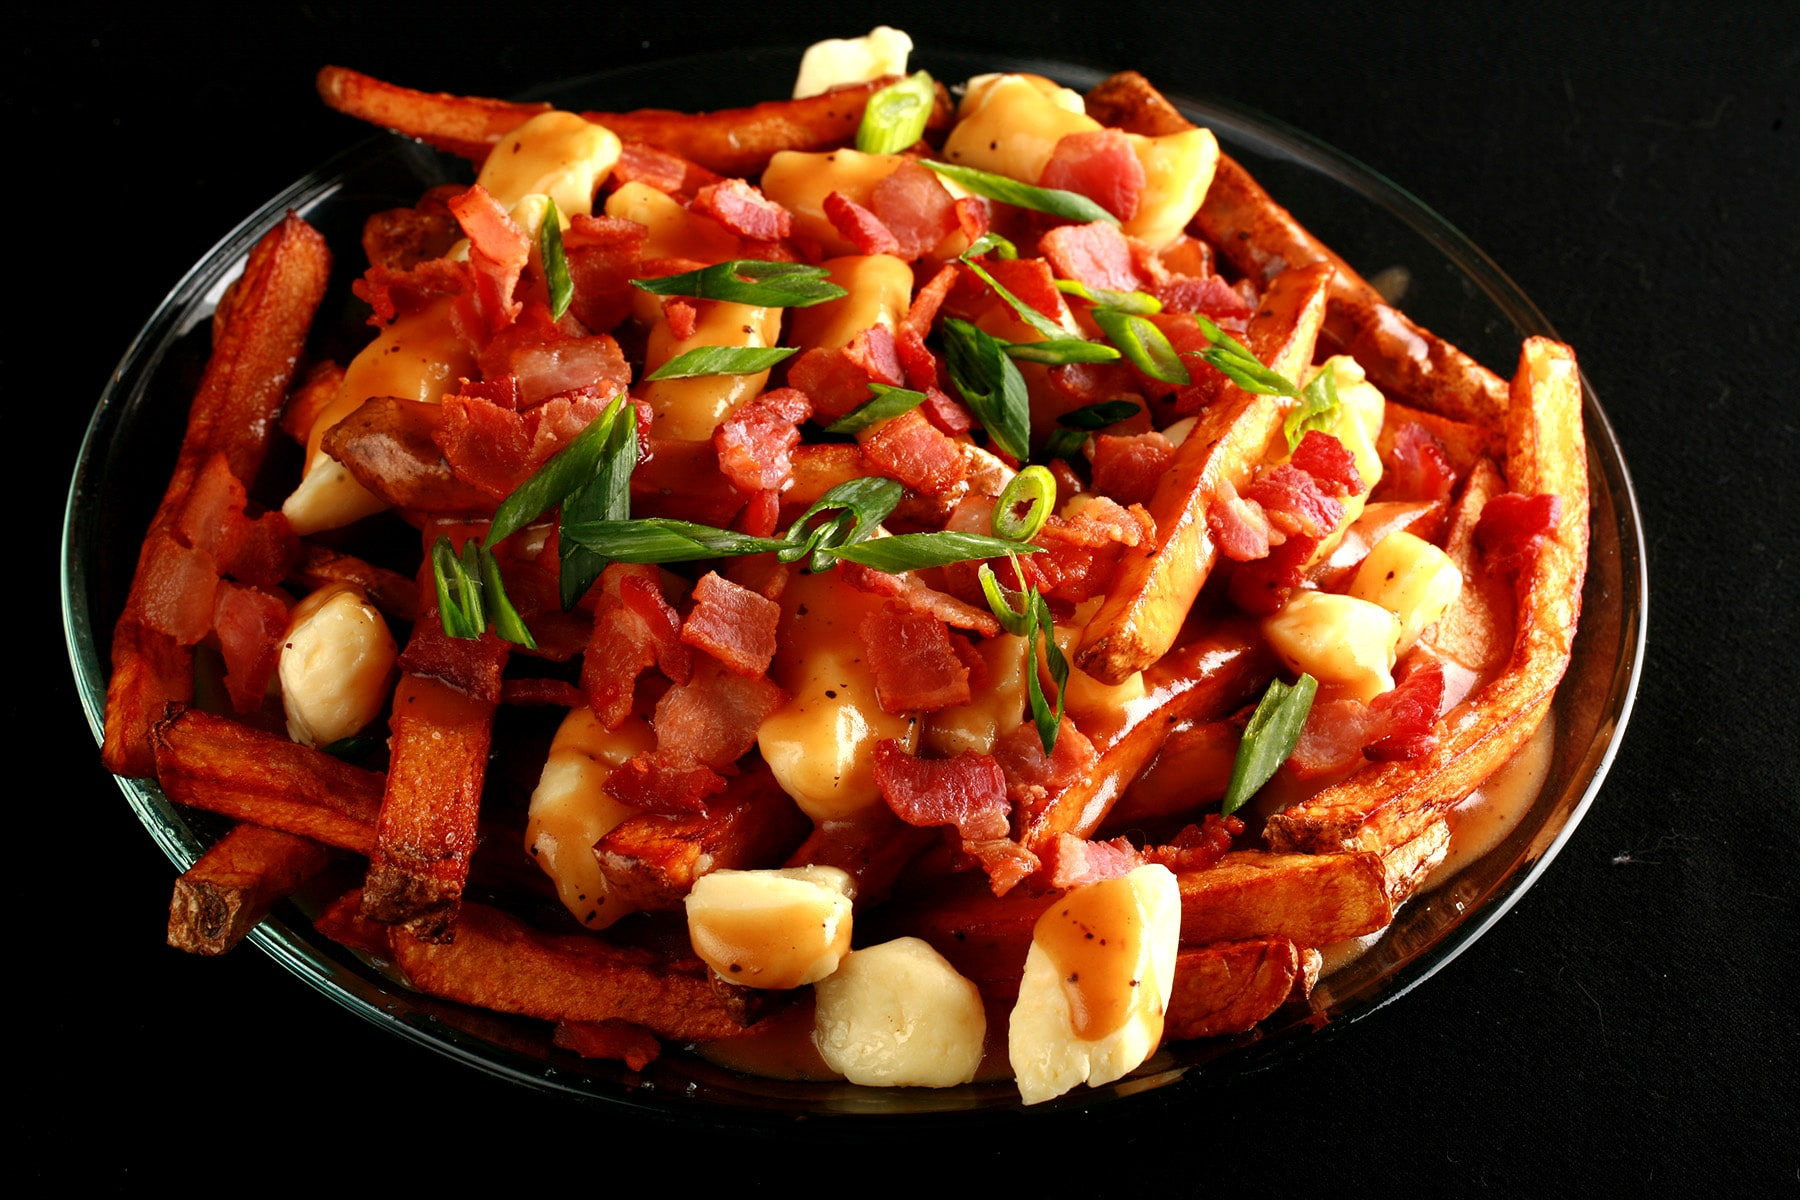 A plate of poutine - fries, white cheese curds, and gravy. This one is garnished with bacon and green onions.